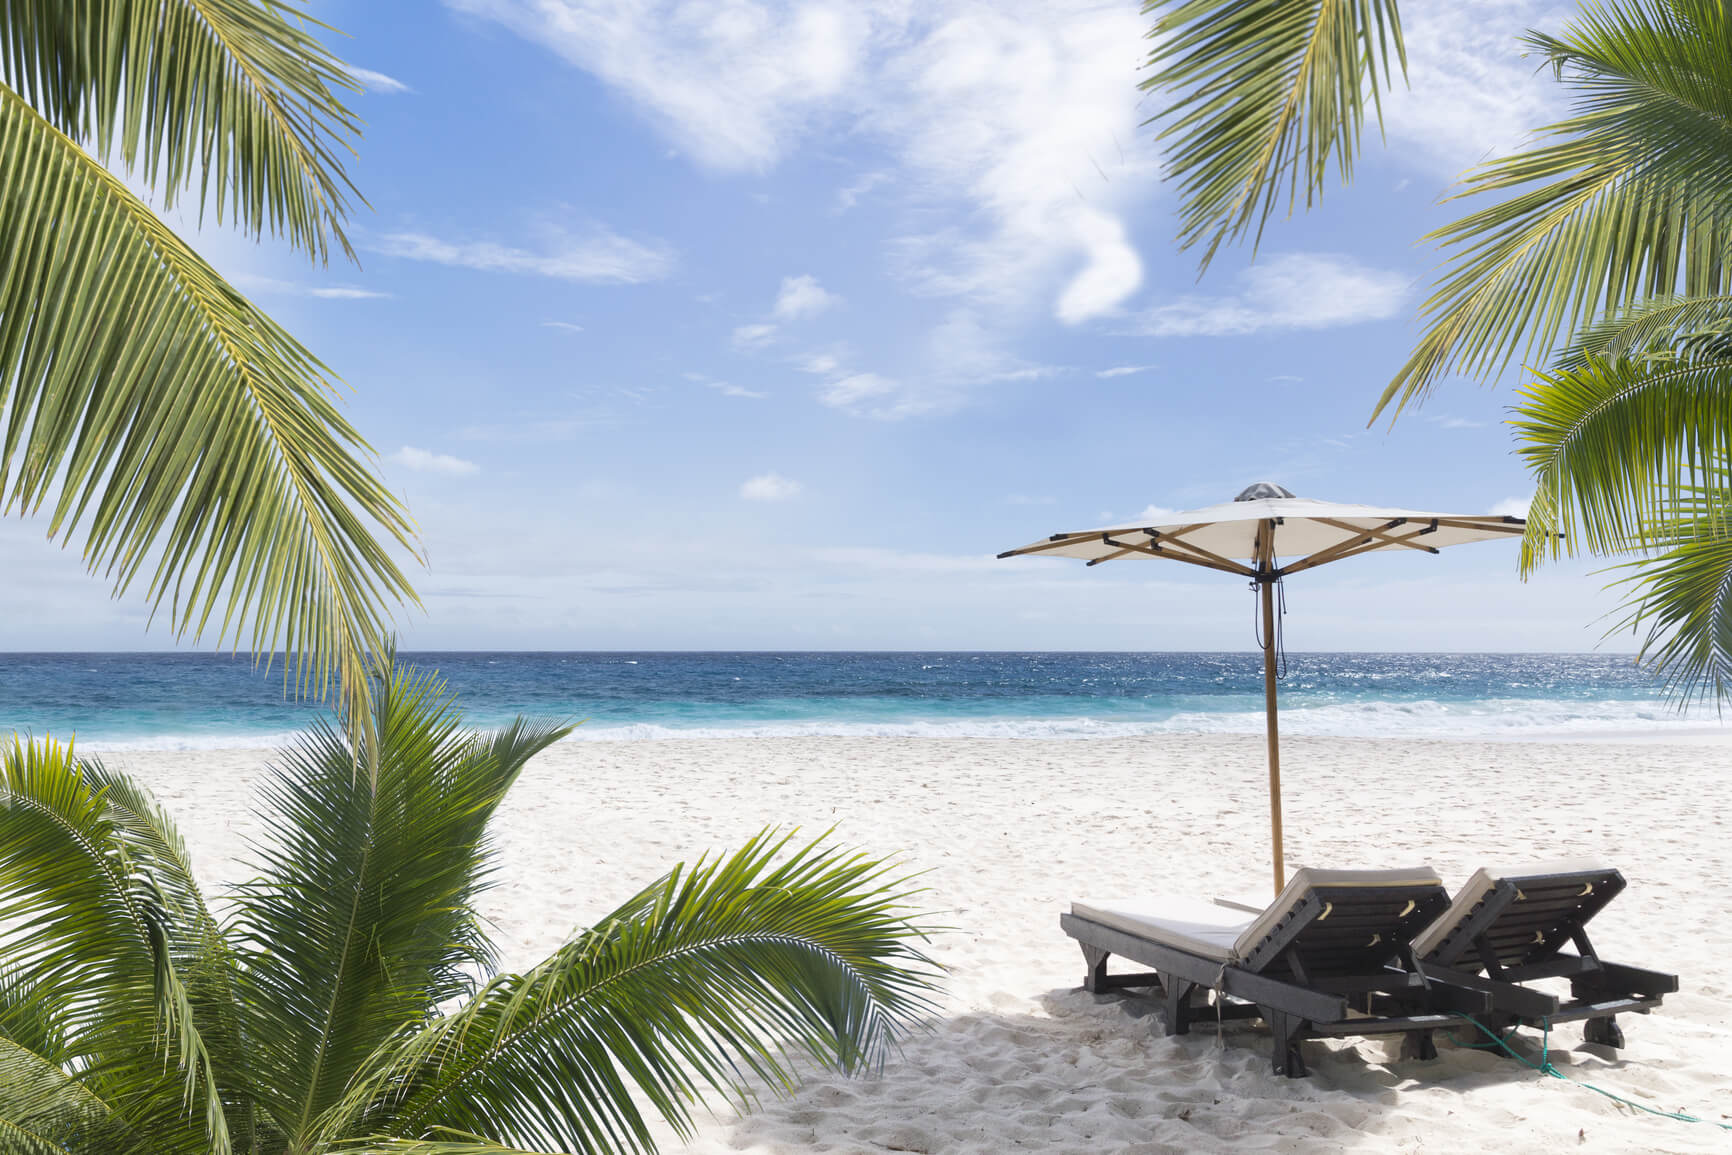 Sofia, Bulgaria to the Seychelles for only €393 roundtrip